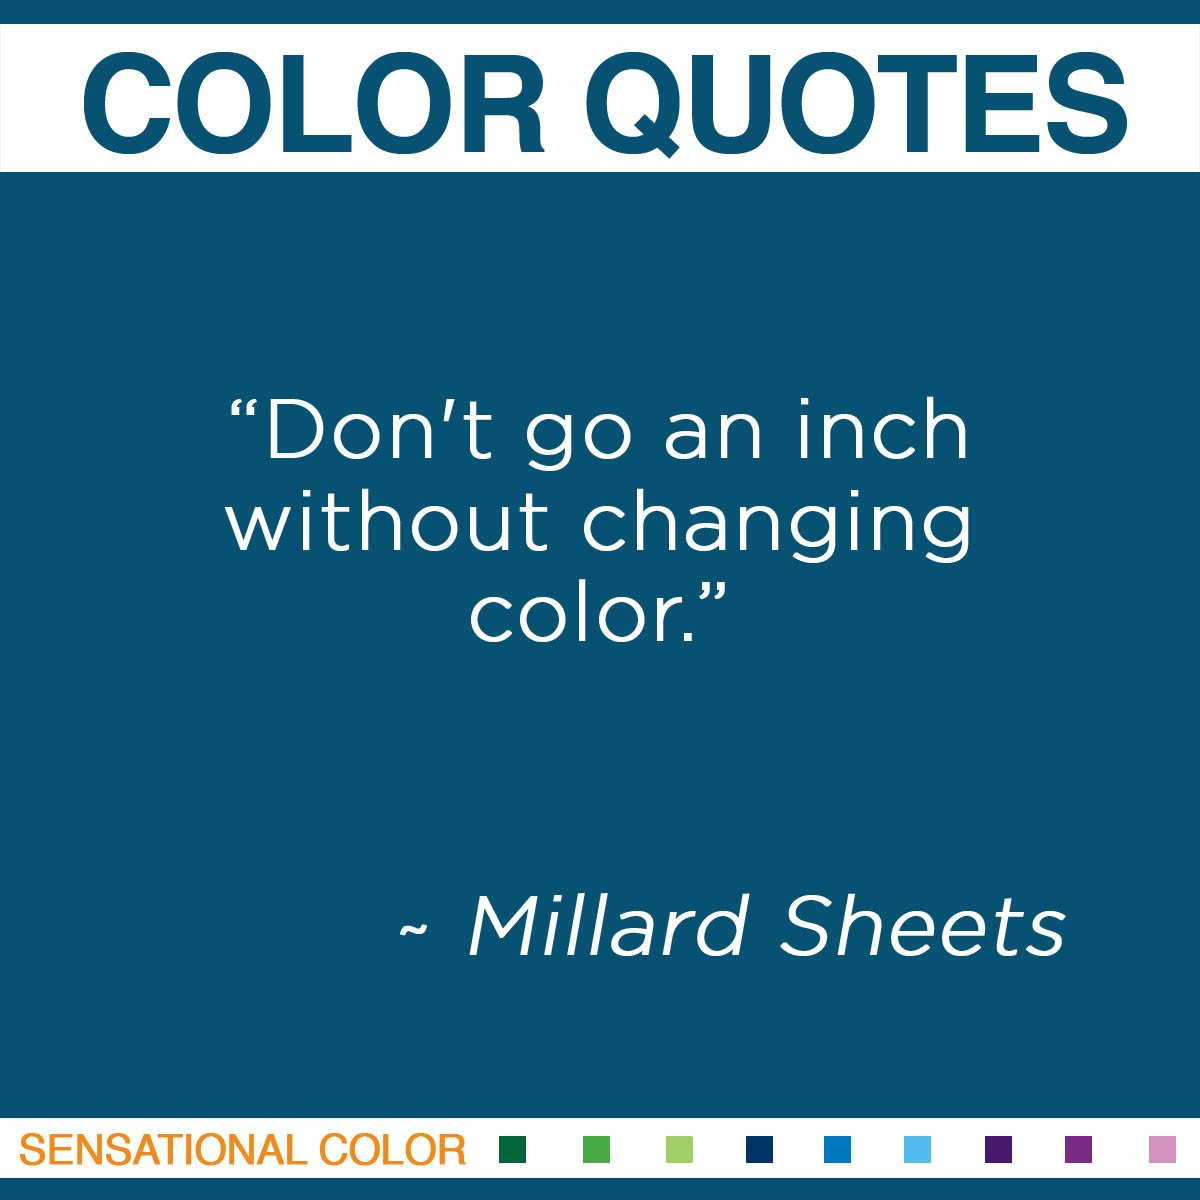 """Don't go an inch without changing color."" - Millard Sheets"